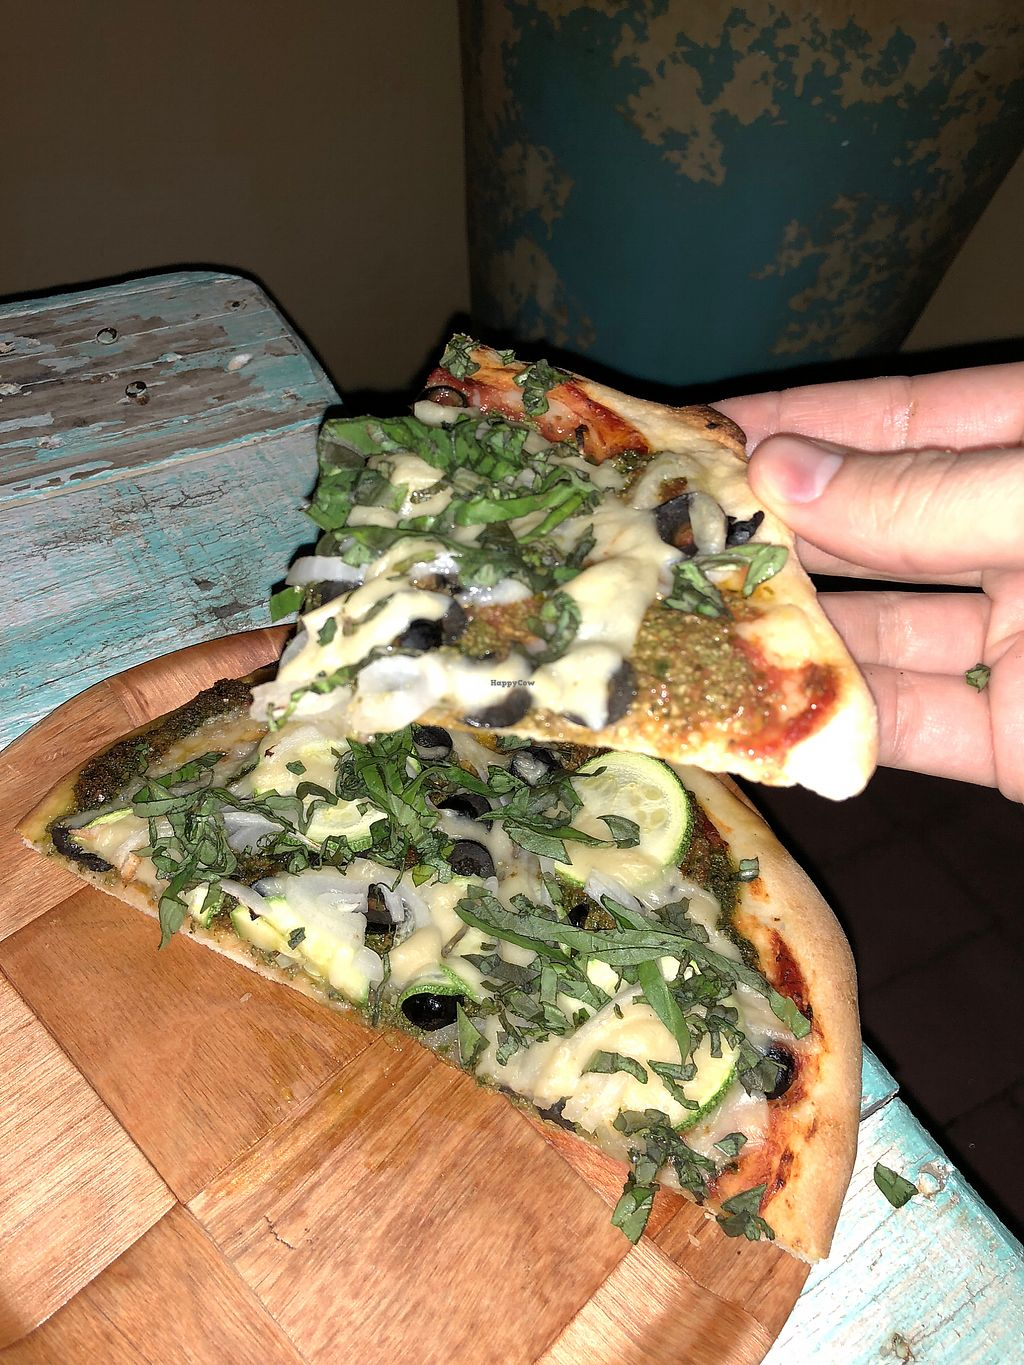 """Photo of La Rana Vegana  by <a href=""""/members/profile/RyanPamplin"""">RyanPamplin</a> <br/>Great Pesto Pizza (that cheese!!!) <br/> January 21, 2018  - <a href='/contact/abuse/image/83802/349490'>Report</a>"""